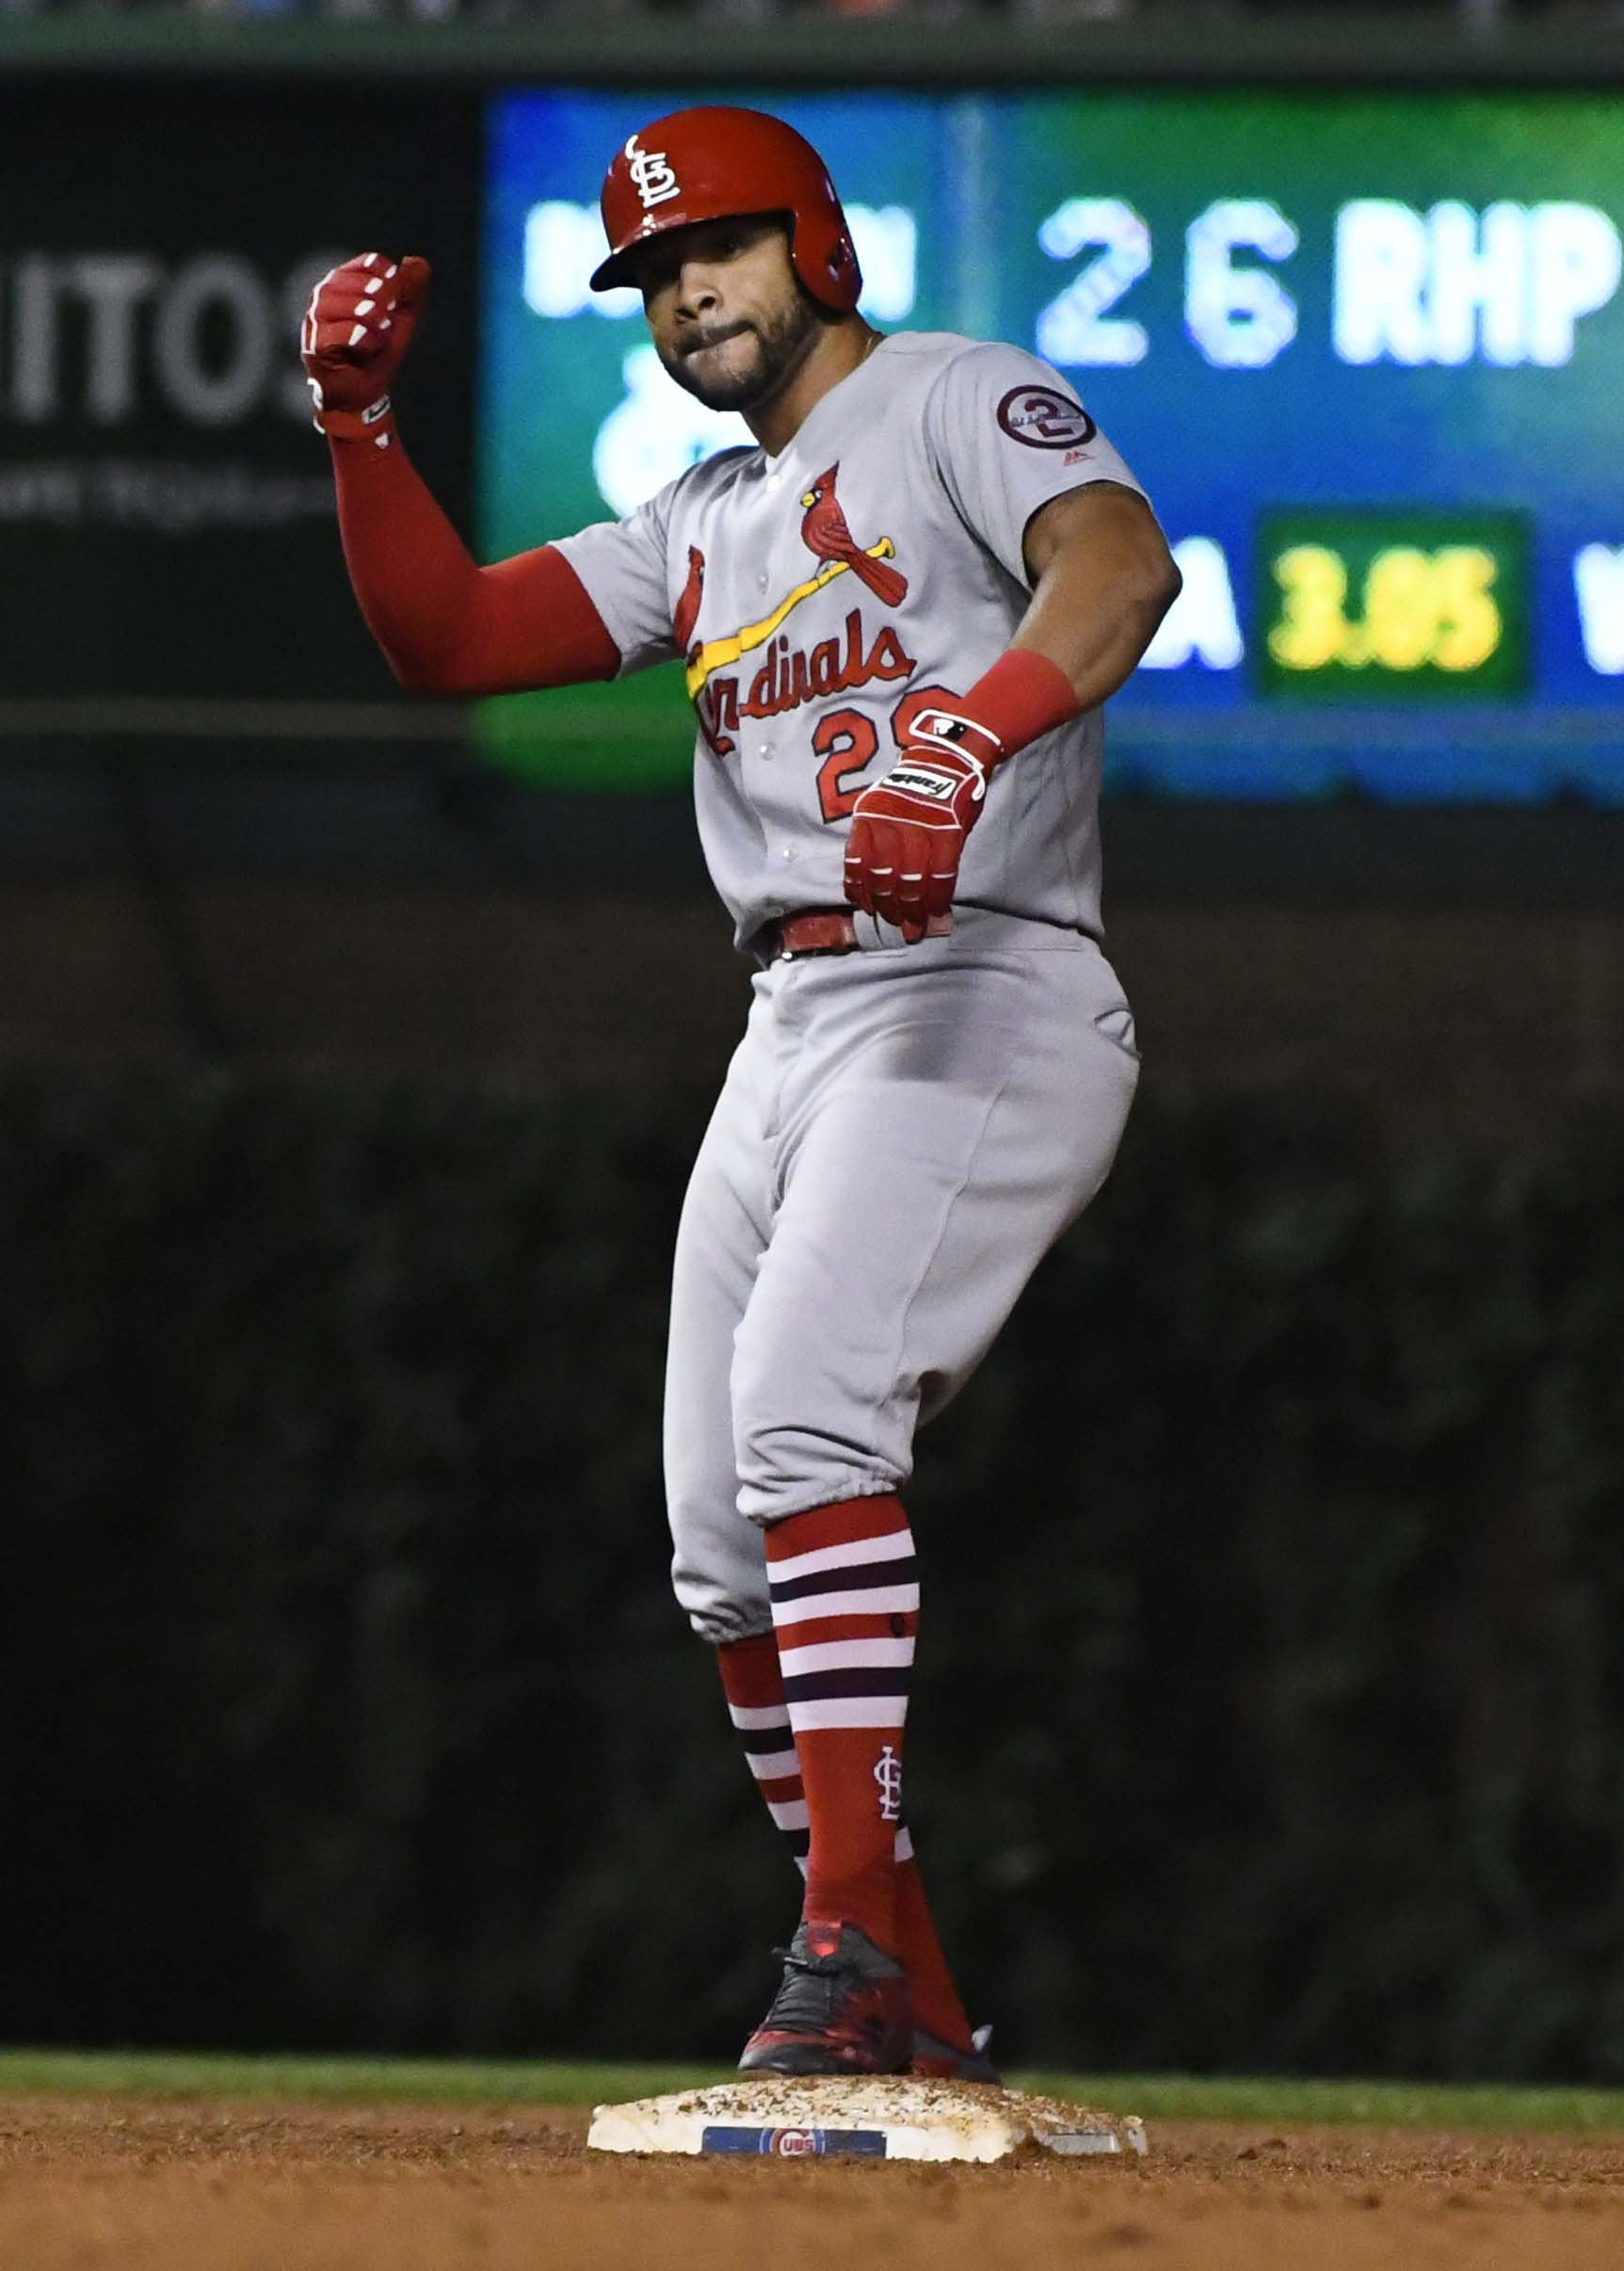 Rays Tommy Acquire Tommy Rays Pham MLB Trade Rumors 2a715d